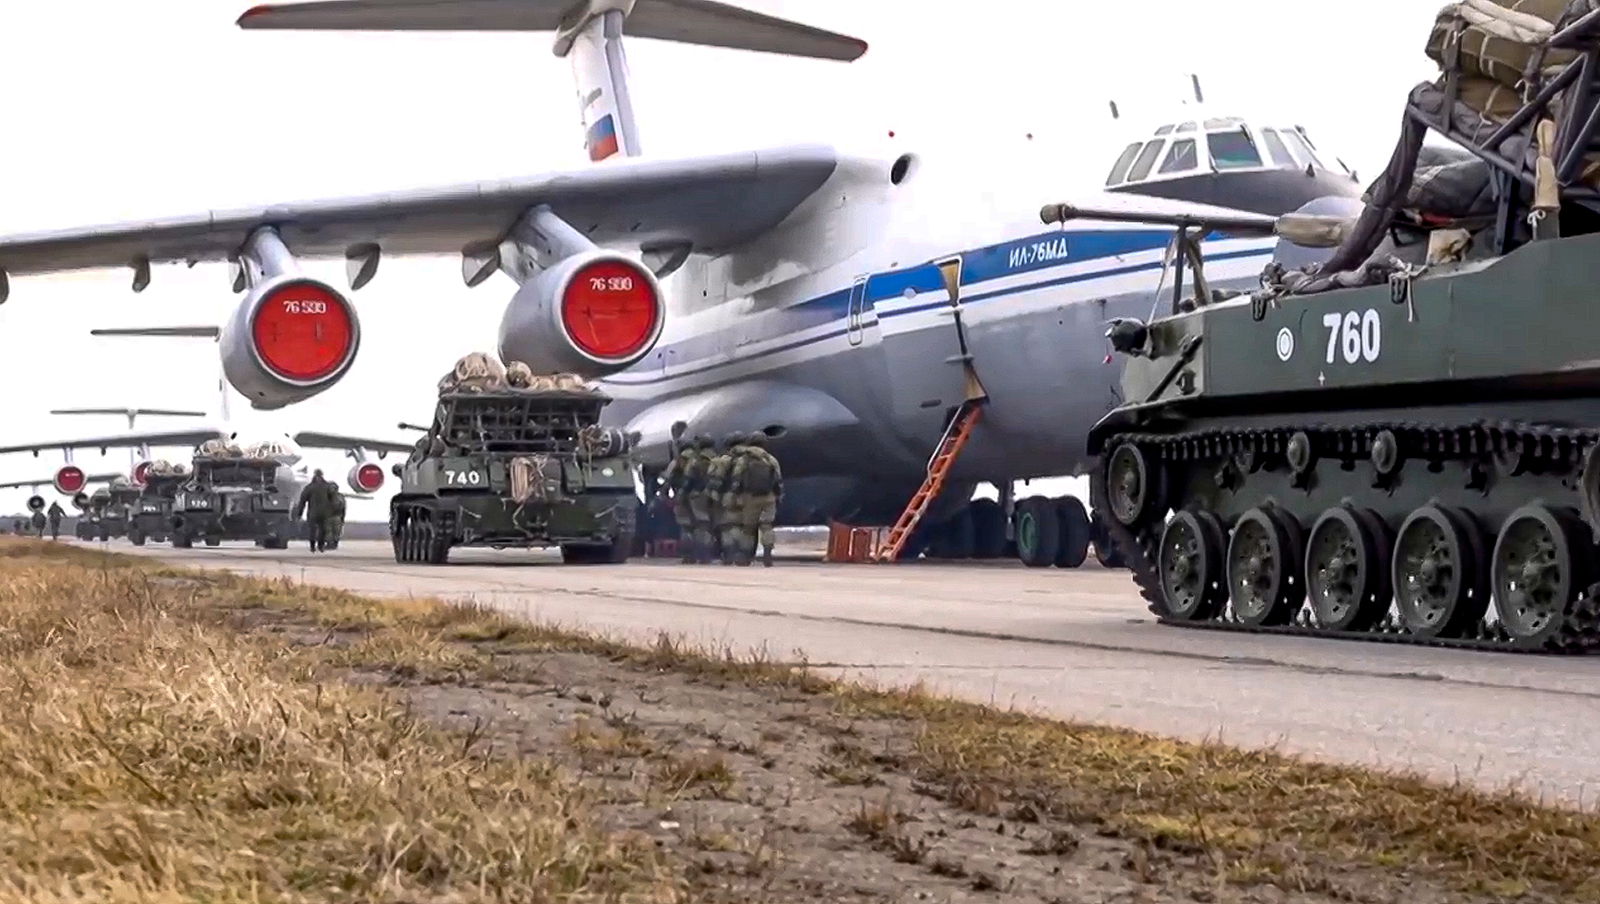 Russian military vehicles prepare to be loaded into a plane for airborne drills during maneuvers in Crimea.